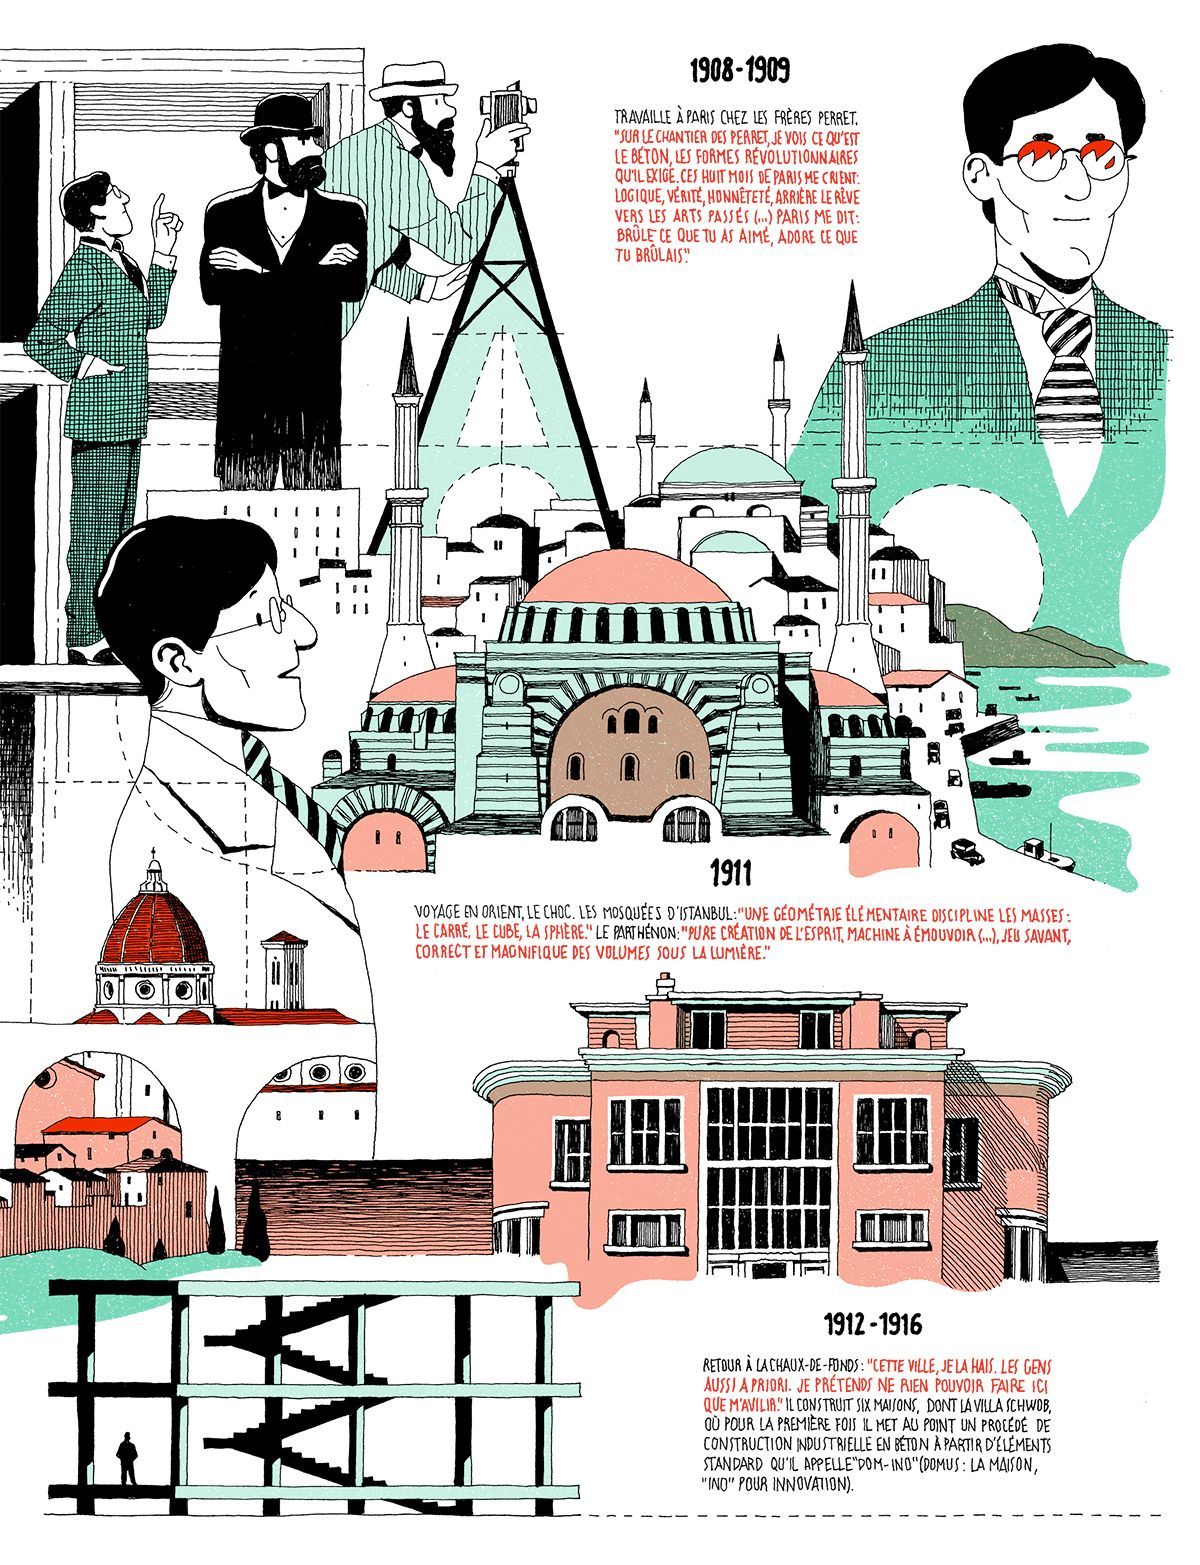 Le corbusier furniture celebrate le corbusier top 5 most famous works - 4 Double Pages Spread Of A Drawn Biography Of Genius Architect Le Corbusier For A Special T L Rama About His Life And Work France Is Celebrating The